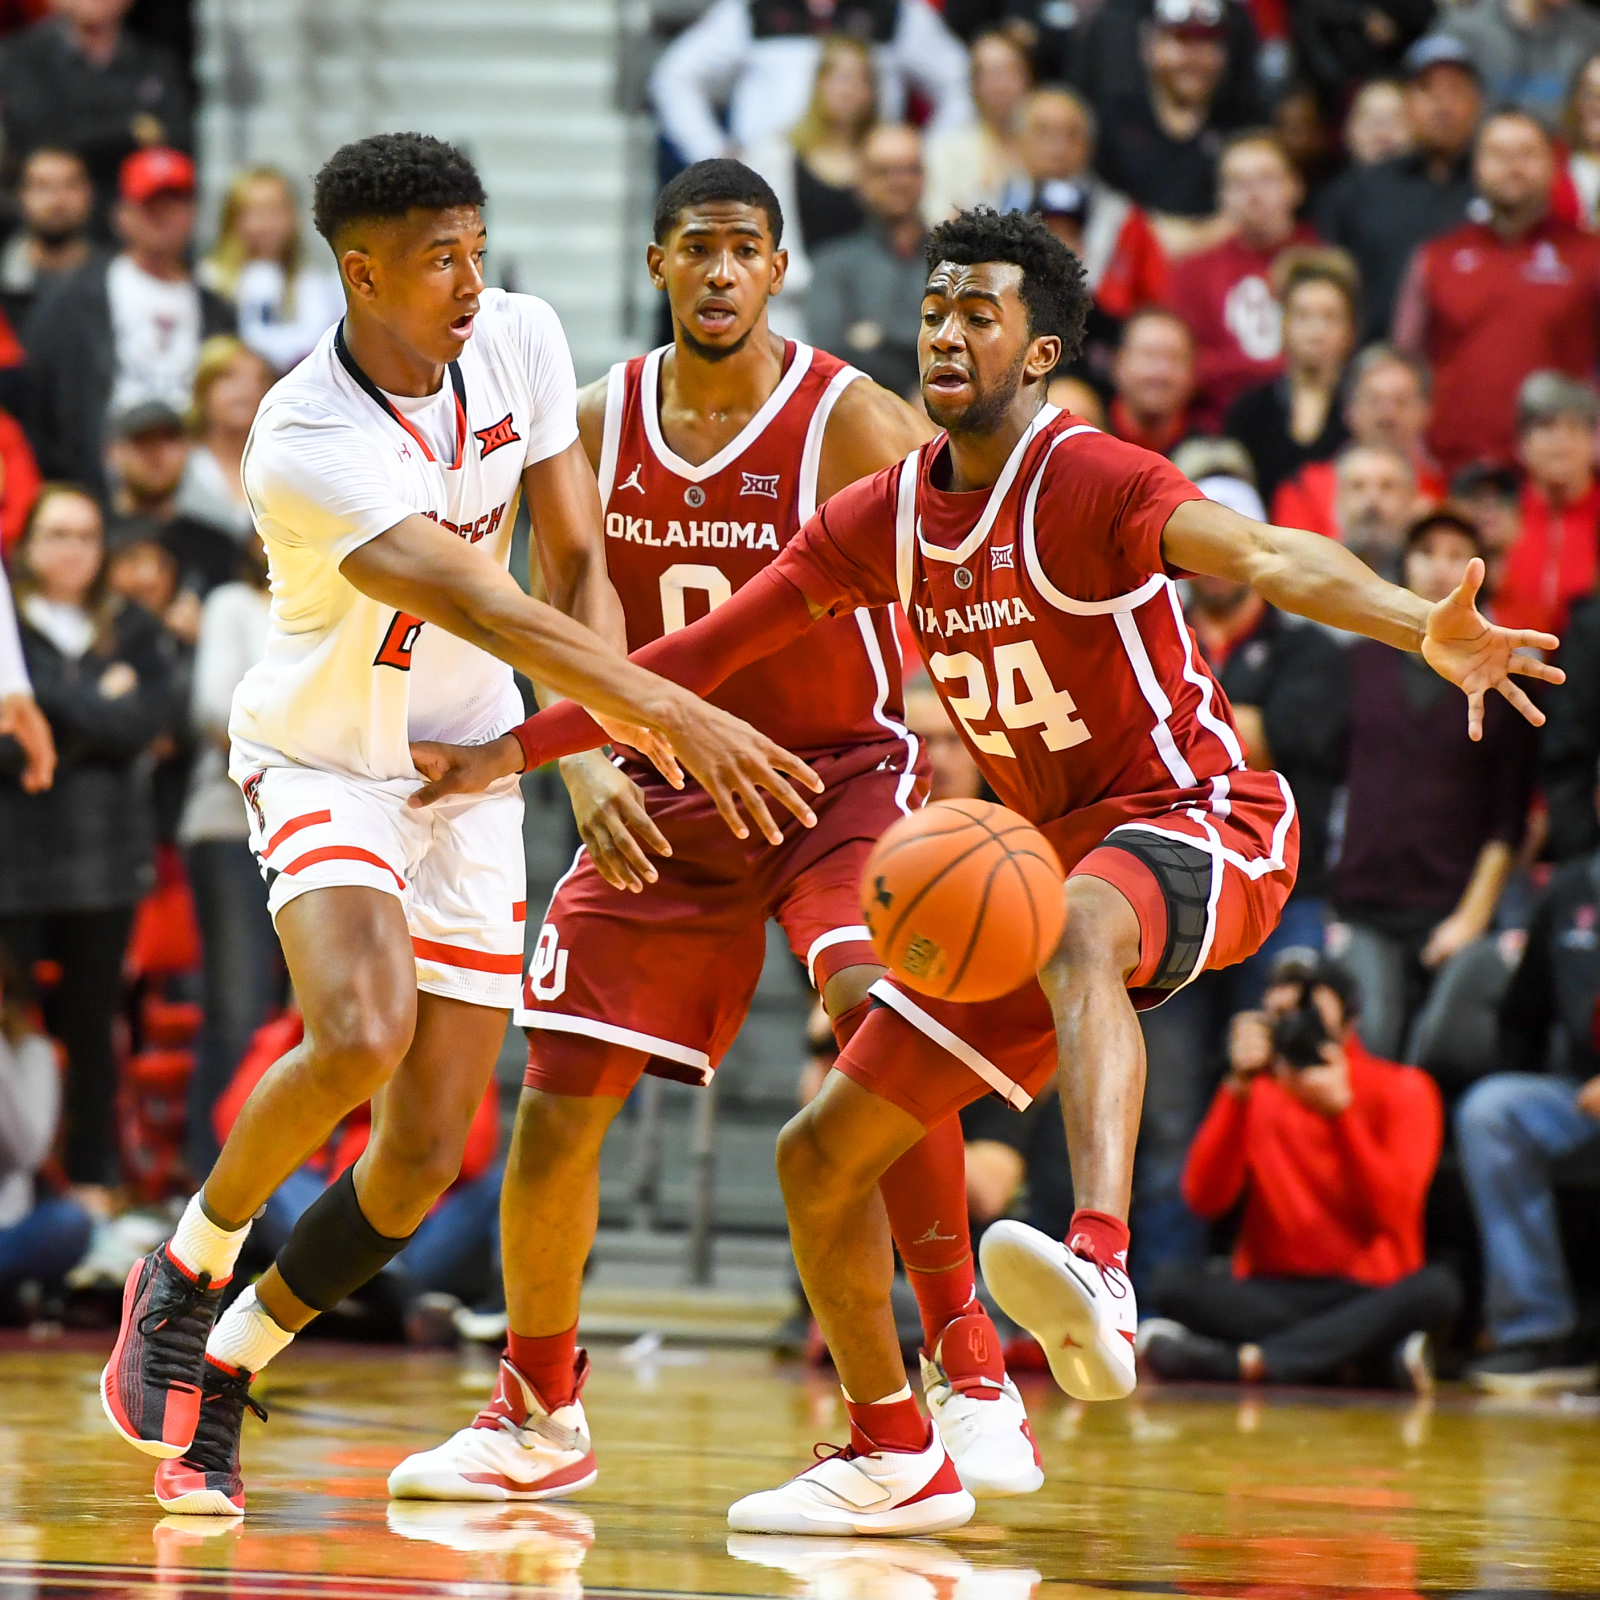 Oklahoma basketball: No ifs, ands or buts, OU must defeat Texas Tech